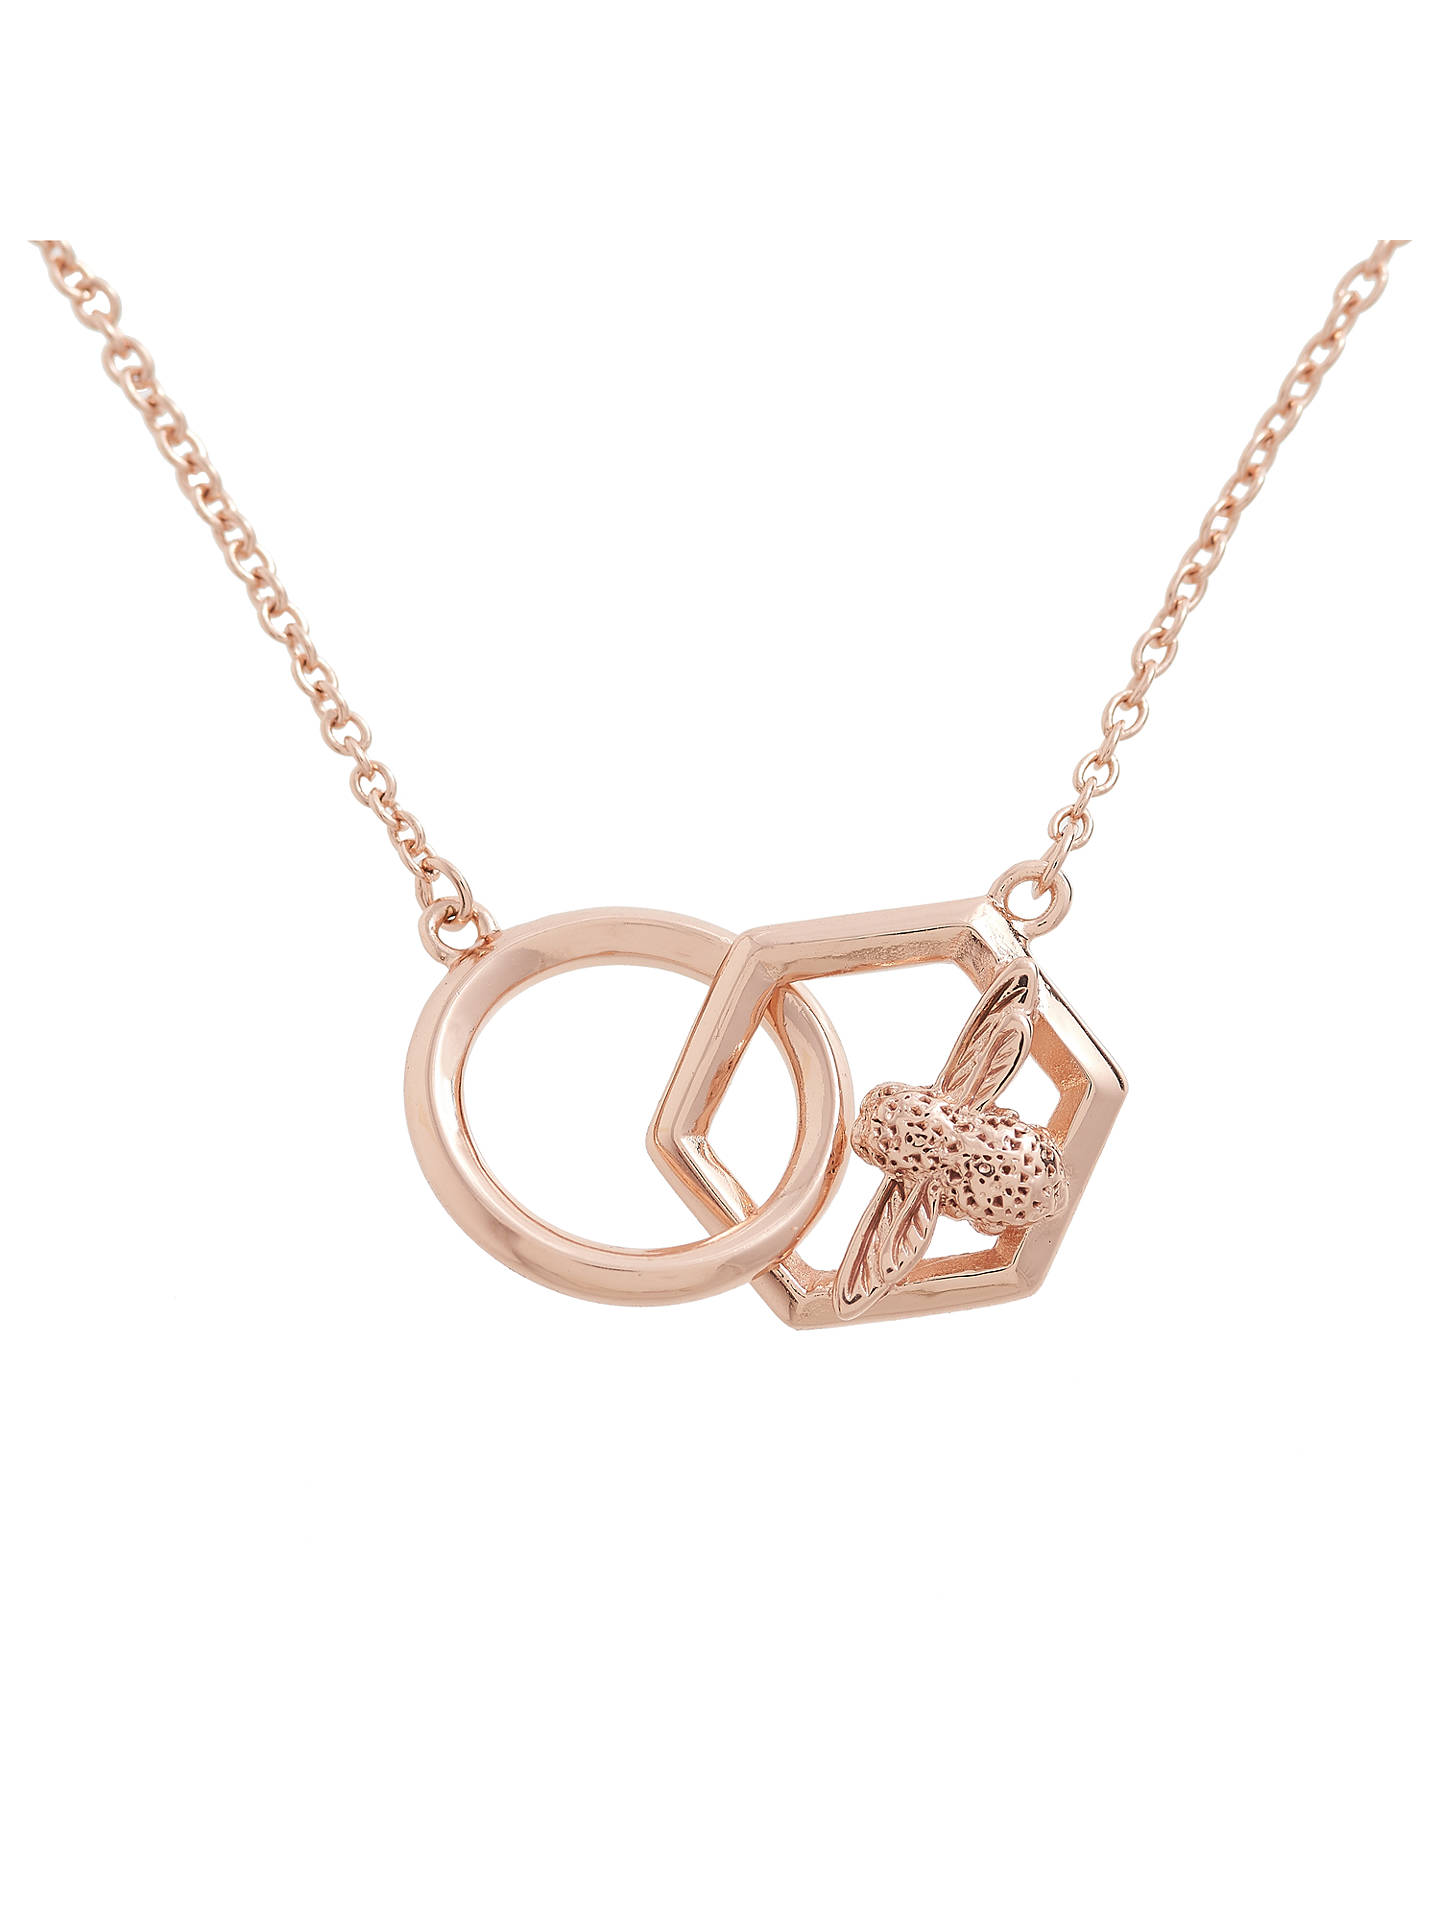 BuyOlivia Burton Honeycomb Bee Chain Necklace, Rose Gold OBJ16AMN21 Online at johnlewis.com